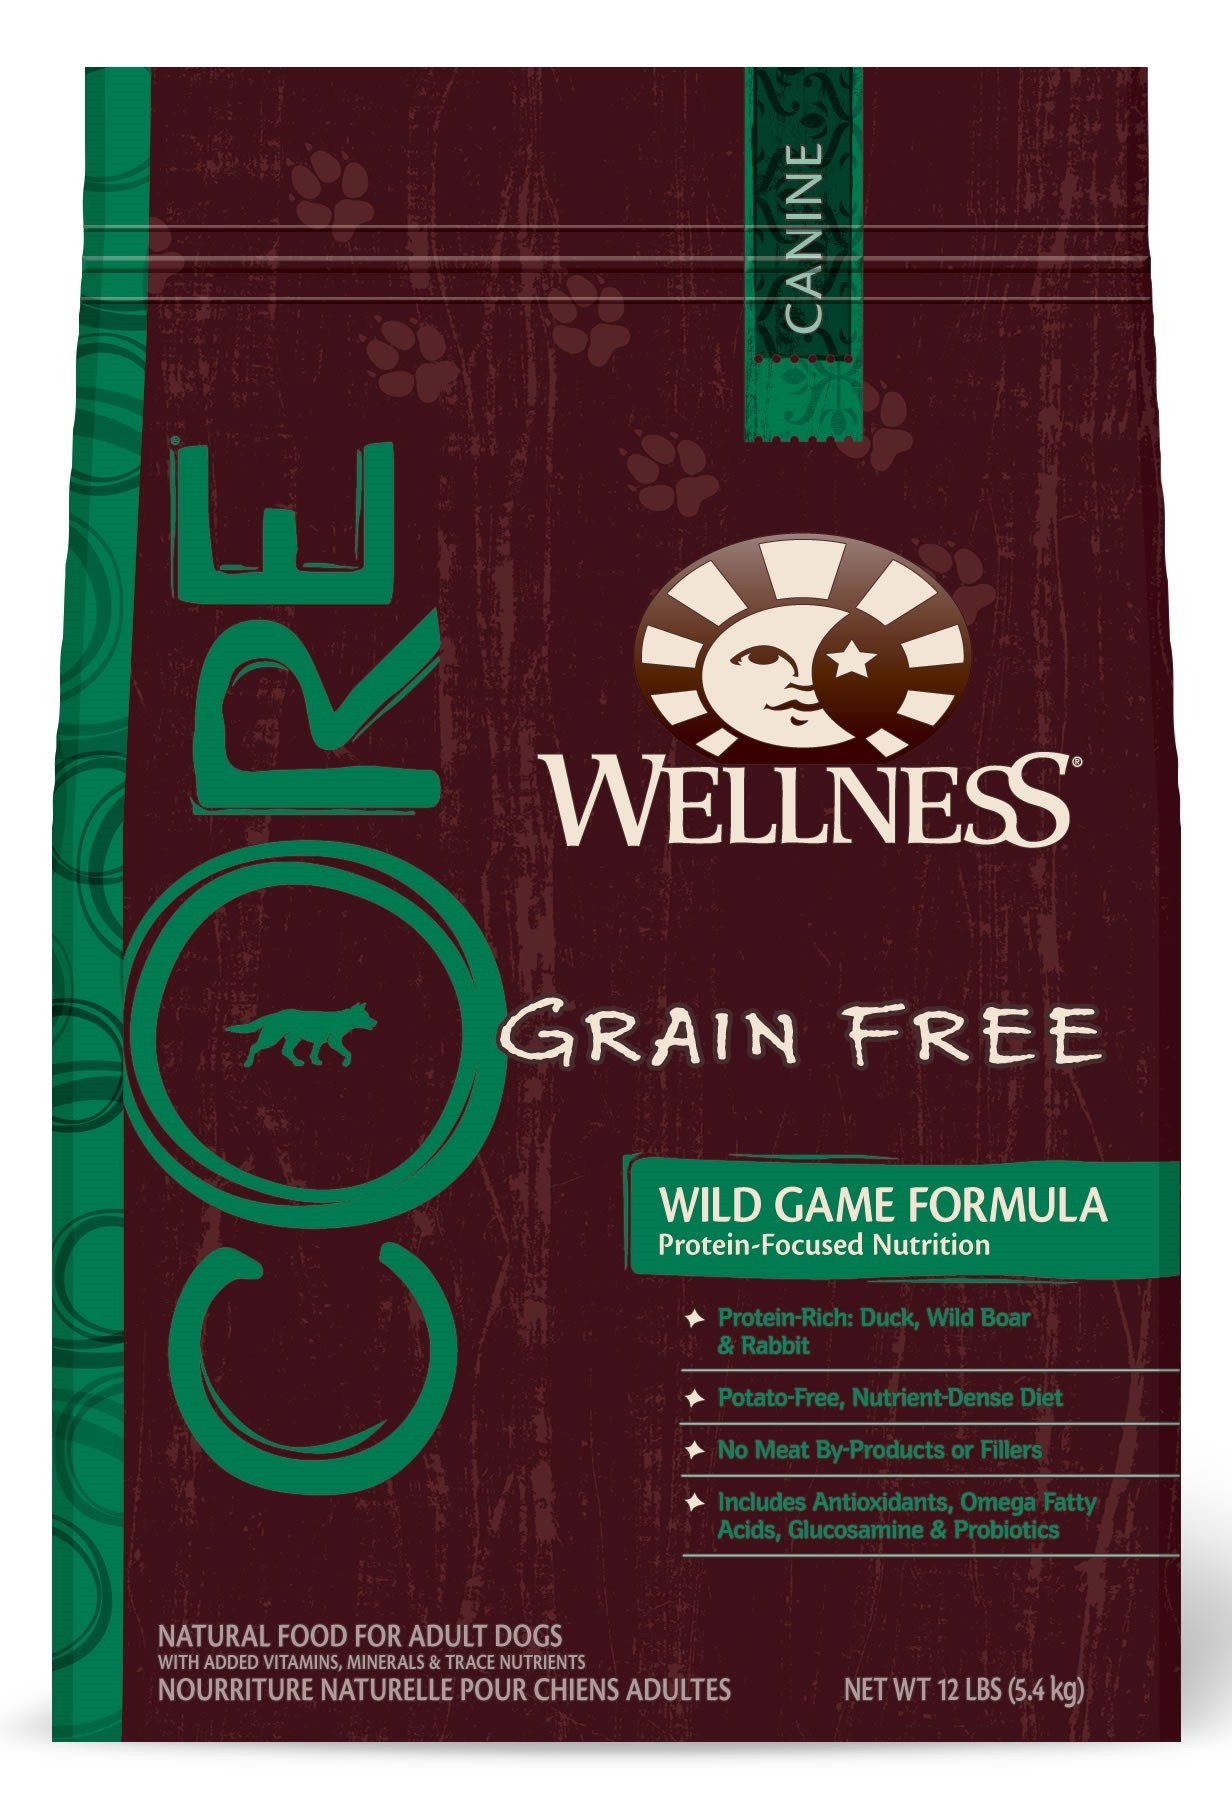 CORE Grain-Free Wild Game Formula